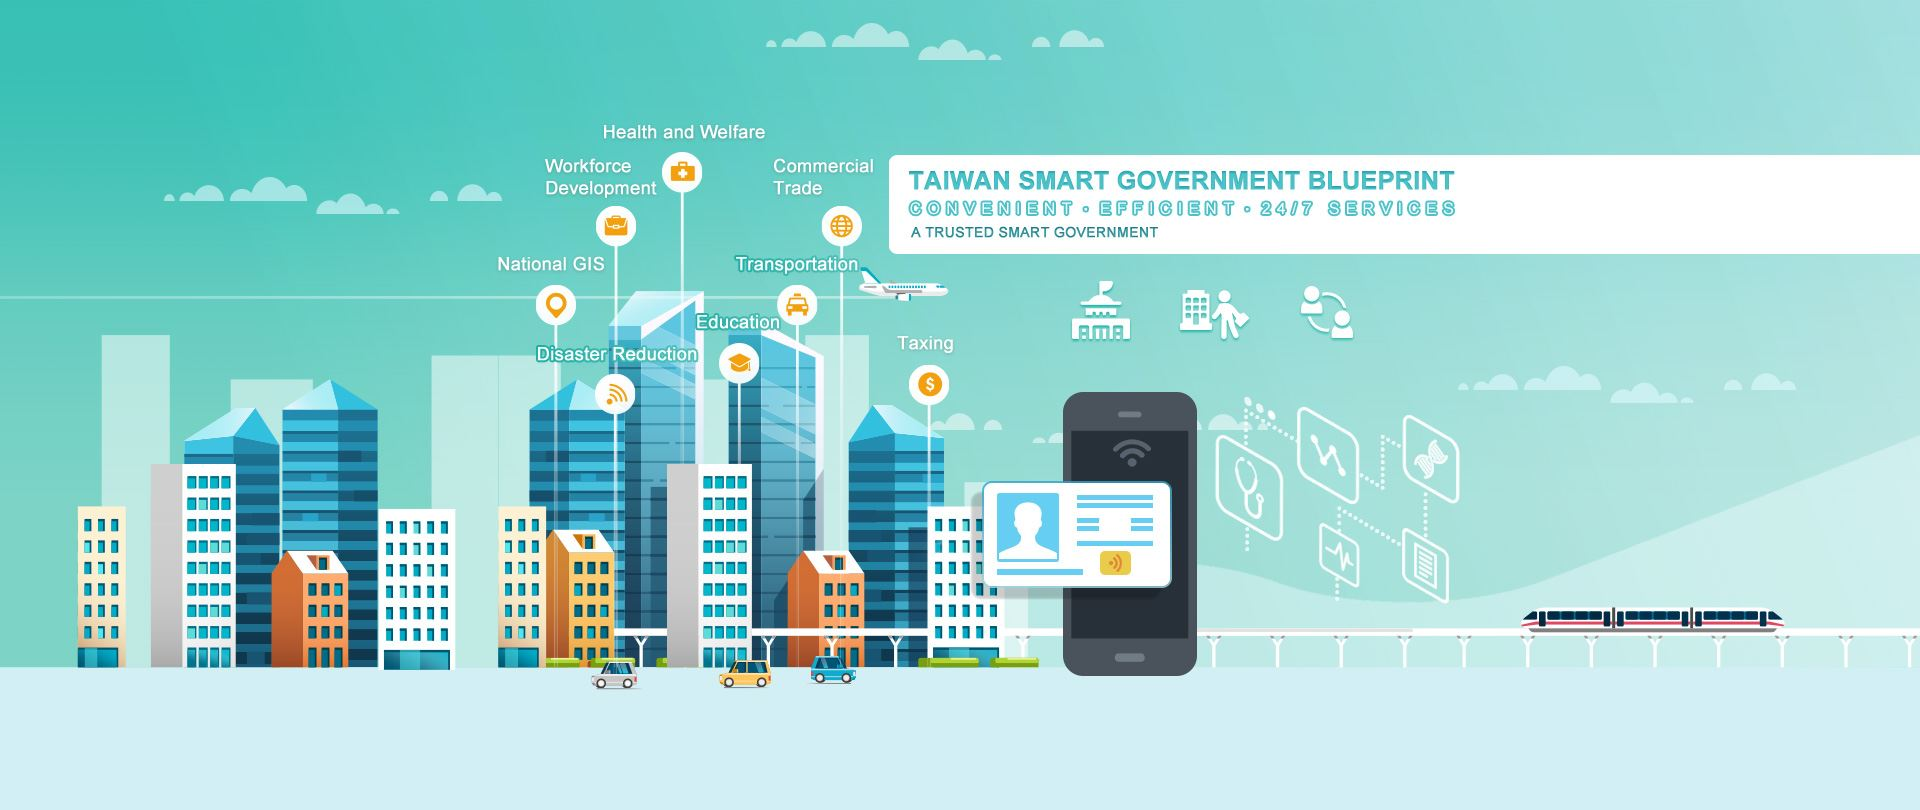 "The core idea of planning Smart Government is ""Based on data, establish a public-private governance model for the next stage to increase the trust between government and people""."